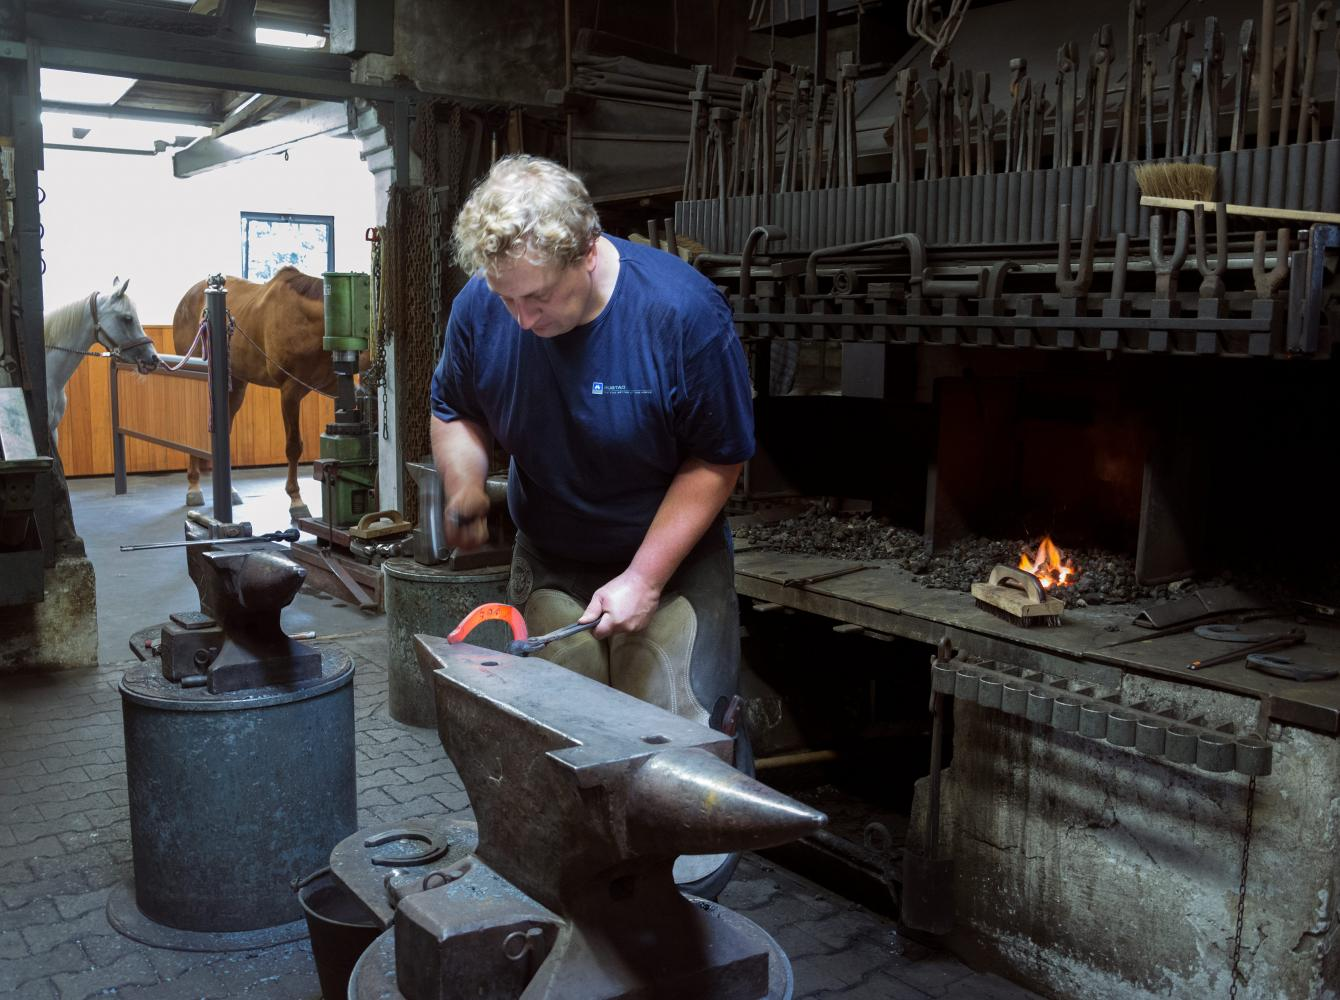 The German farrier Christoph Schweppe forging a horseshoe